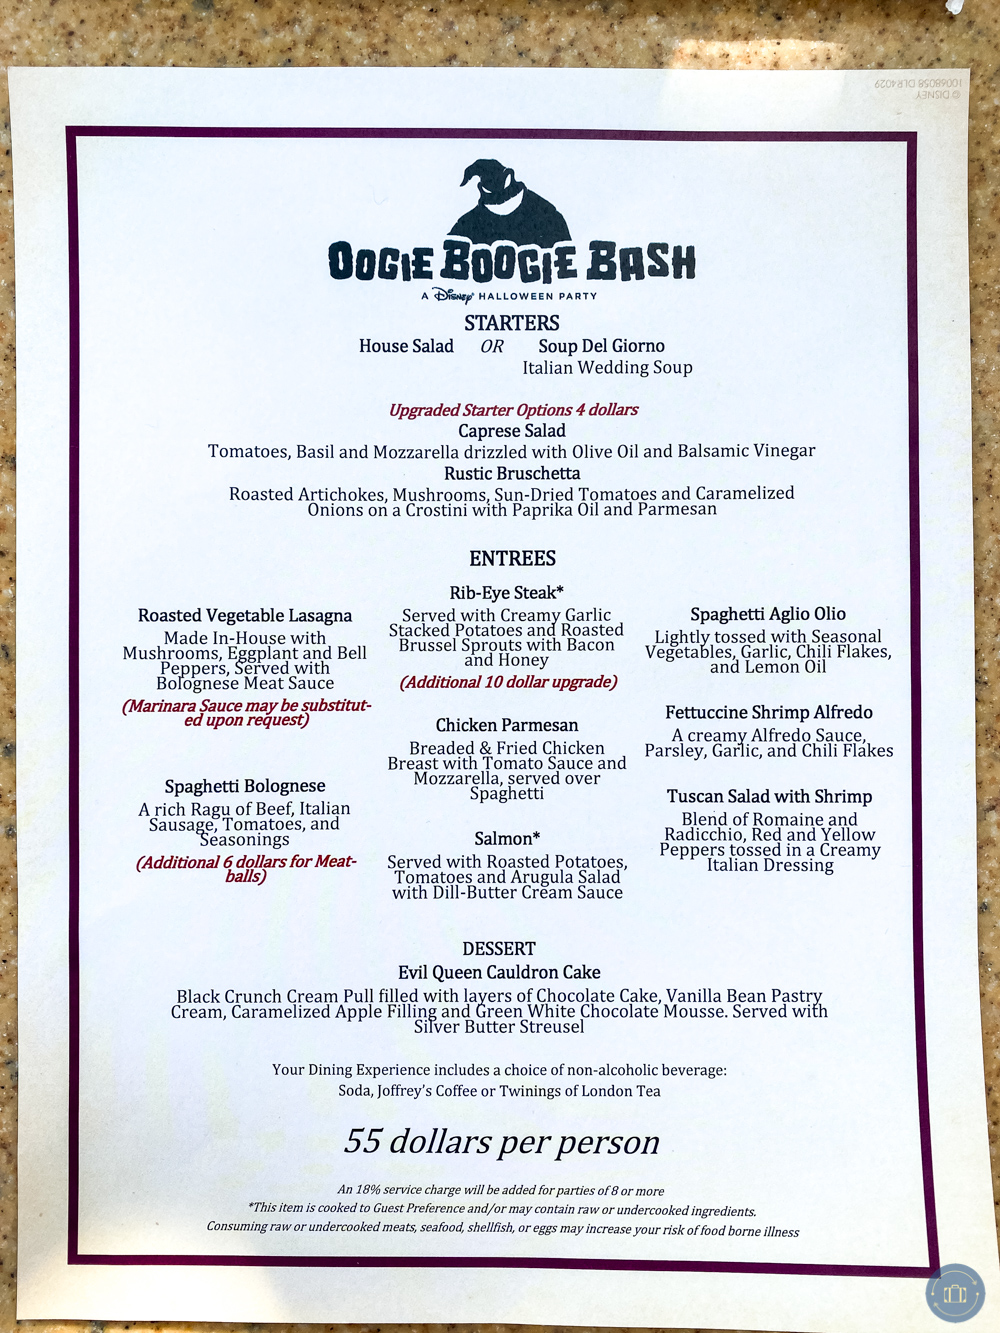 oogie boogie bash halloween party wine country trattoria dining package adult menu